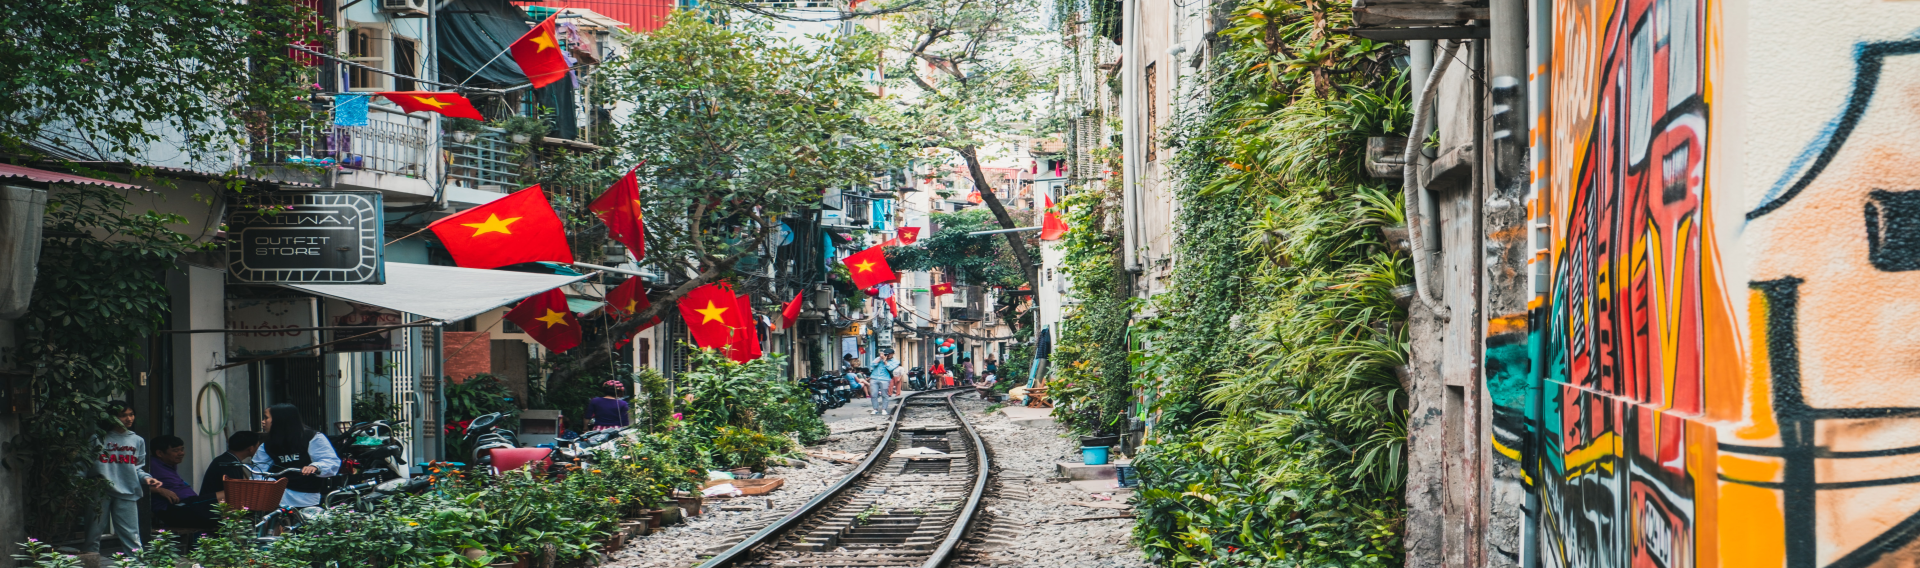 Travel Vietnam by train